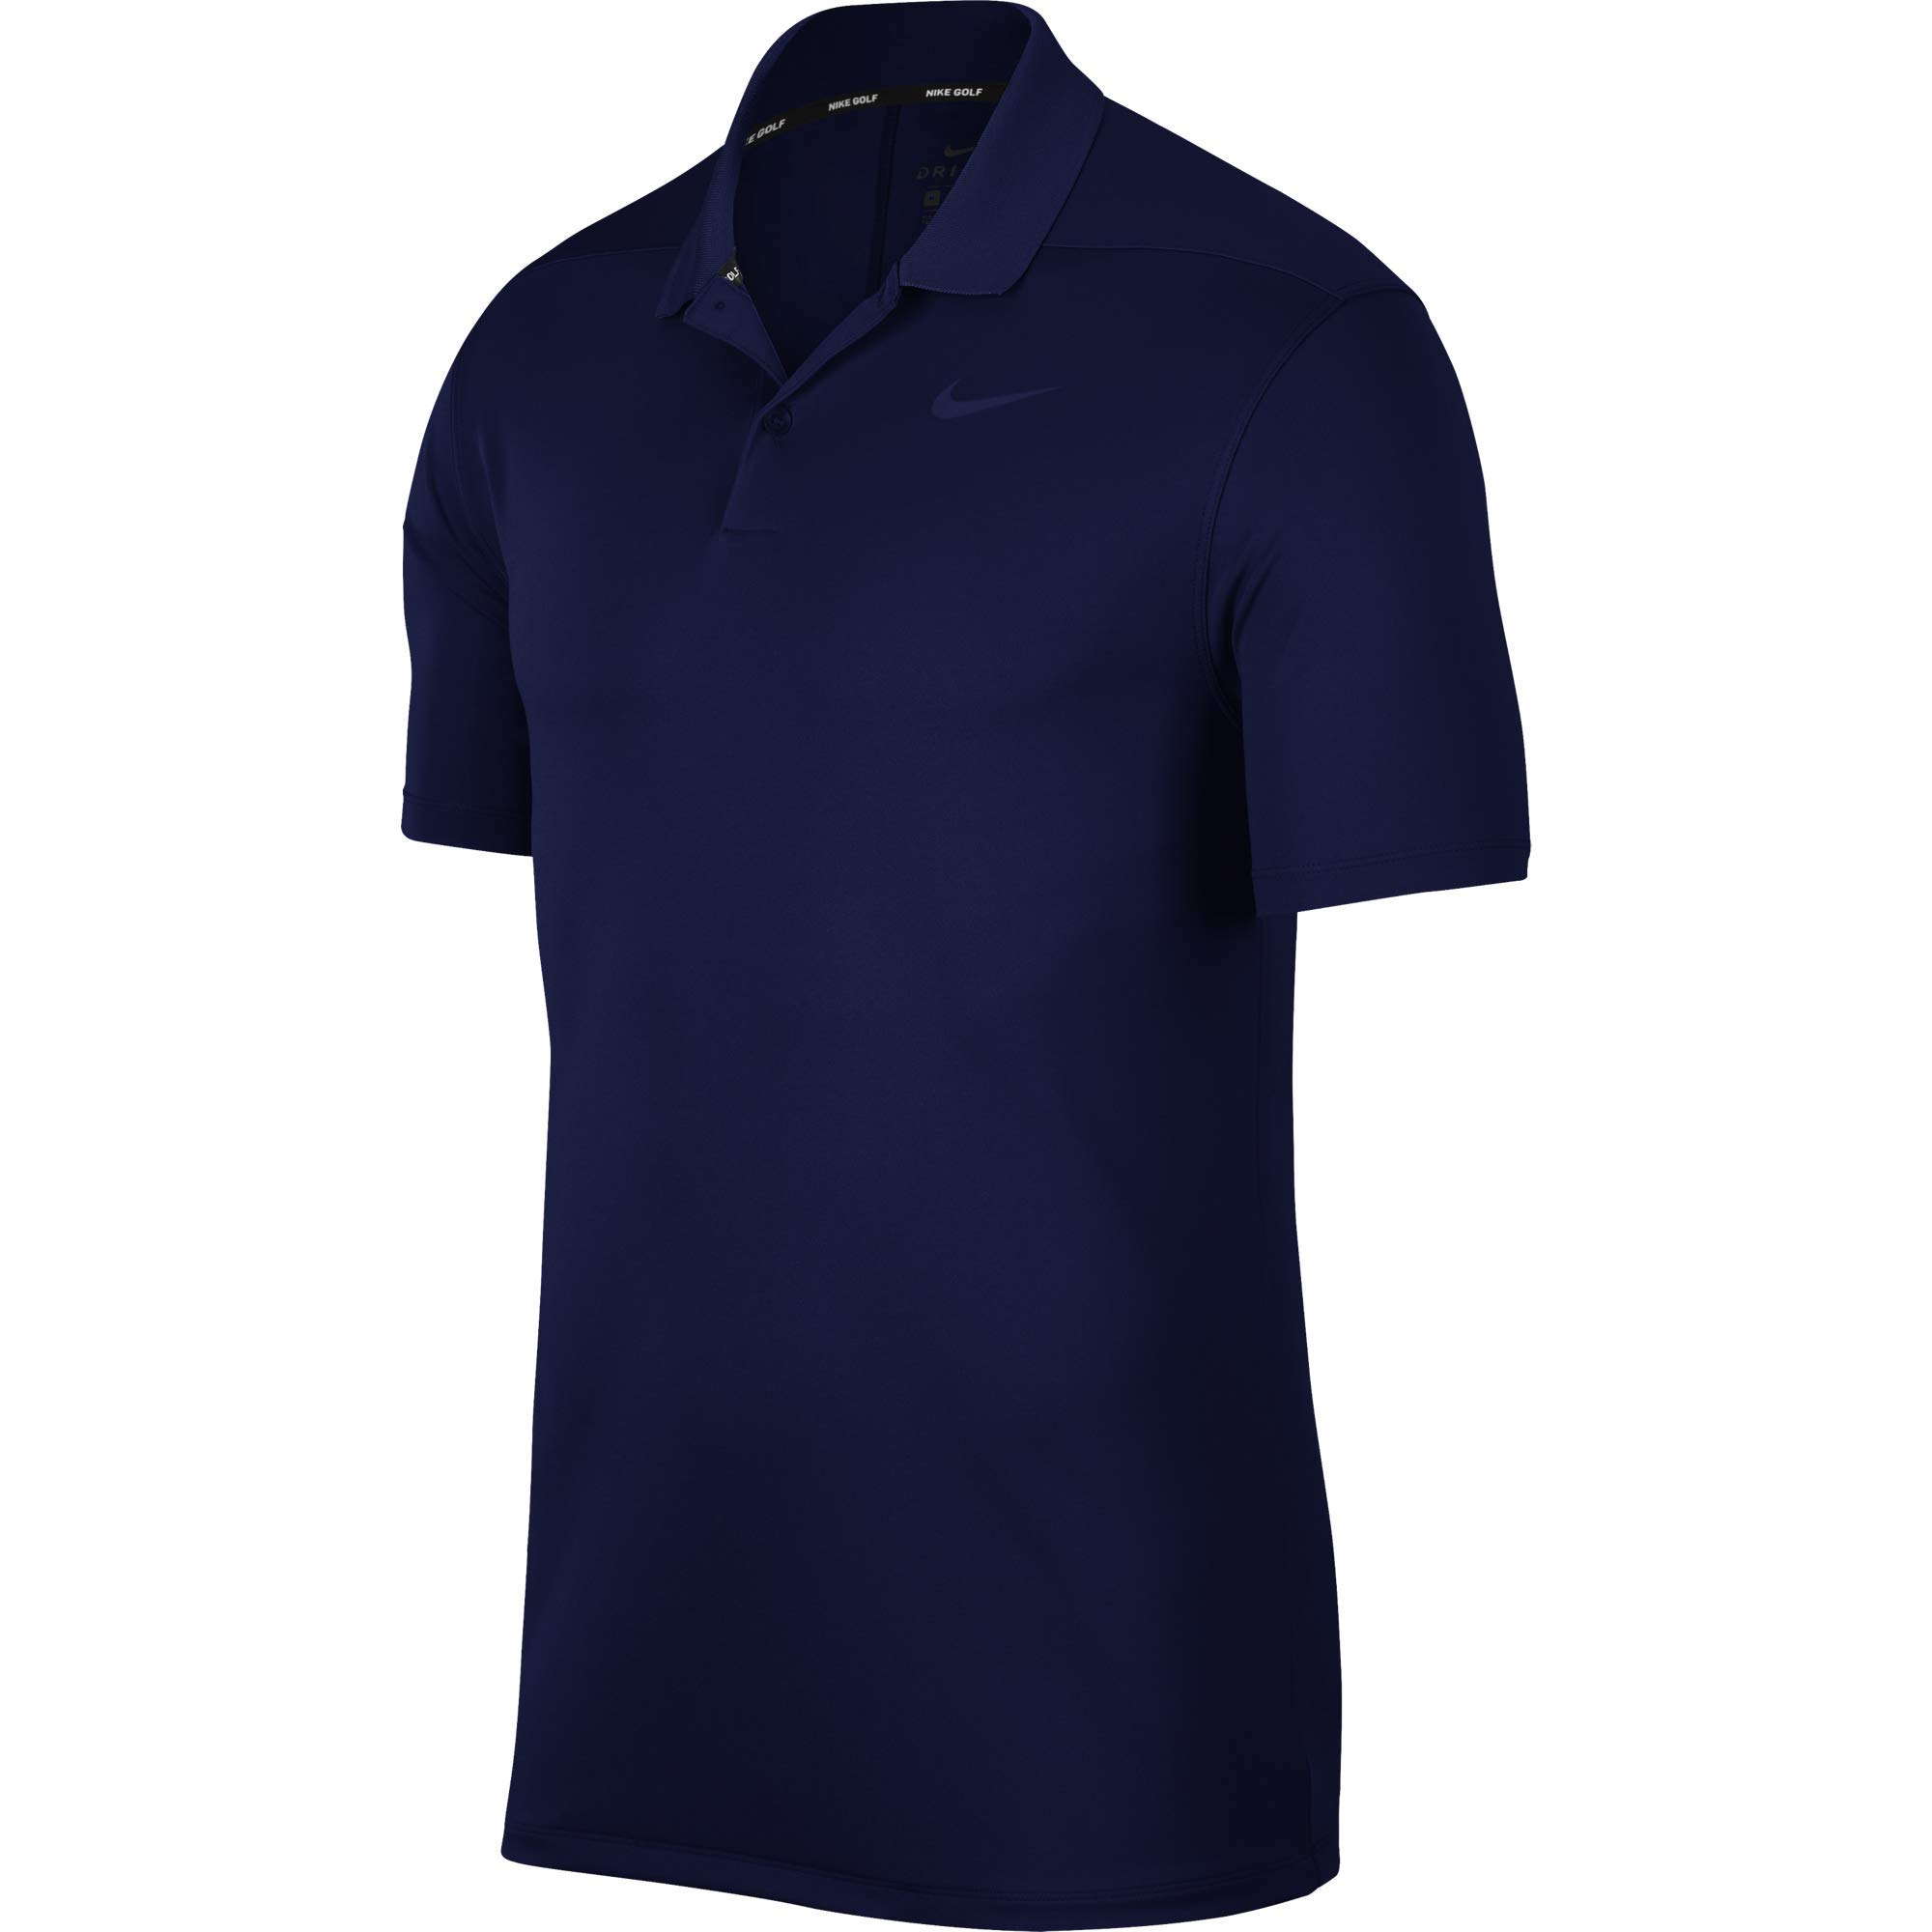 Nike Men's Dry Victory Polo Solid Left Chest, Blue Void, Small